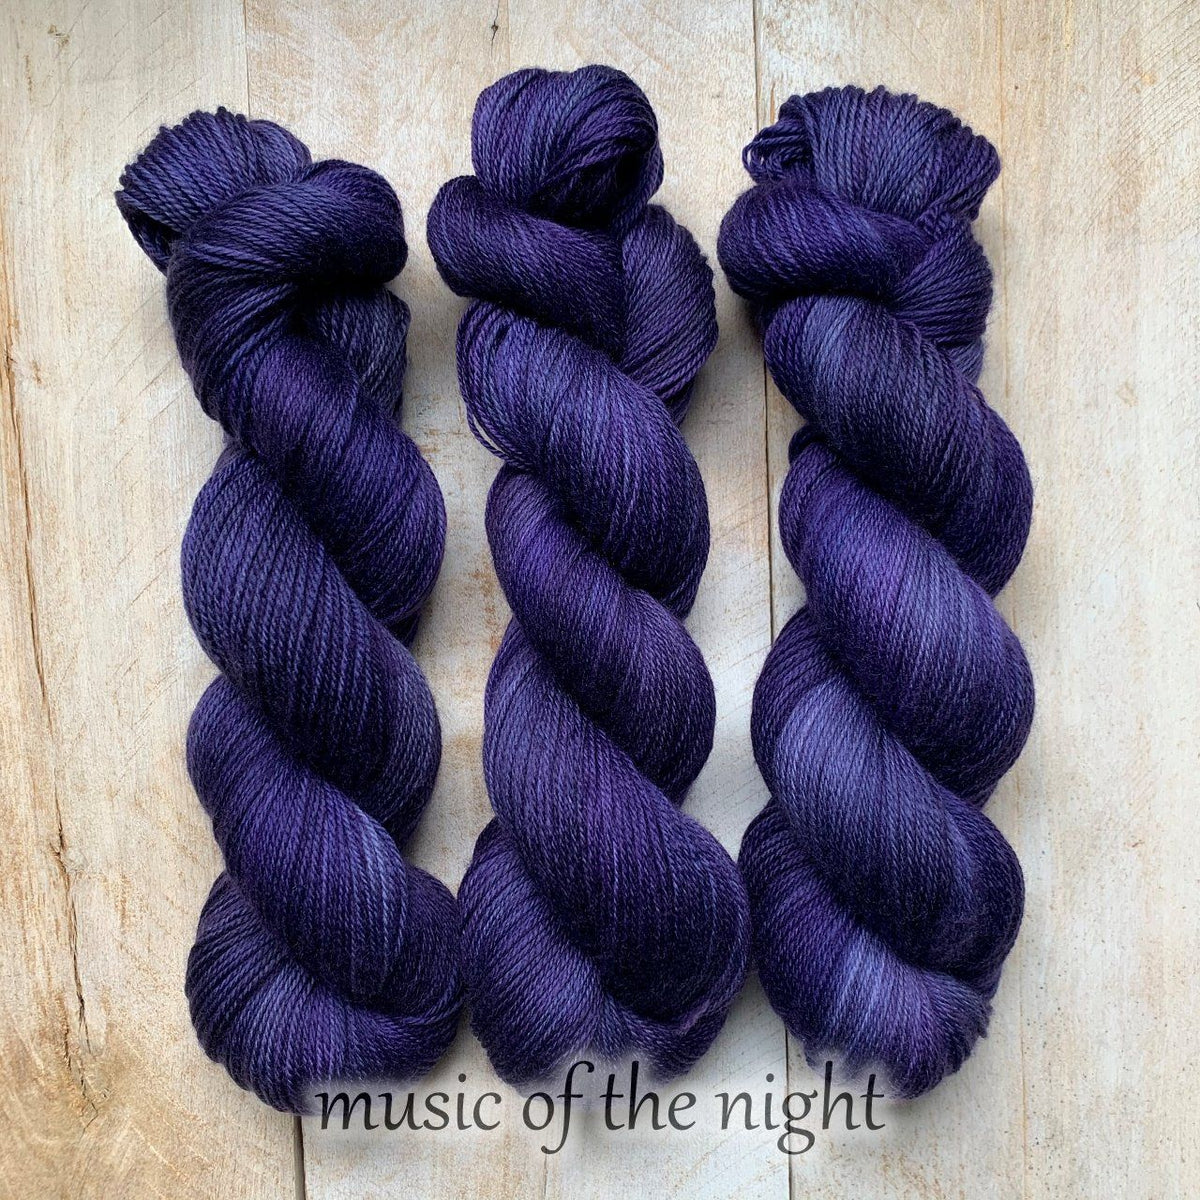 MUSIC OF THE NIGHT by Louise Robert Design | SUPER SOCK hand-dyed semi-solid yarn